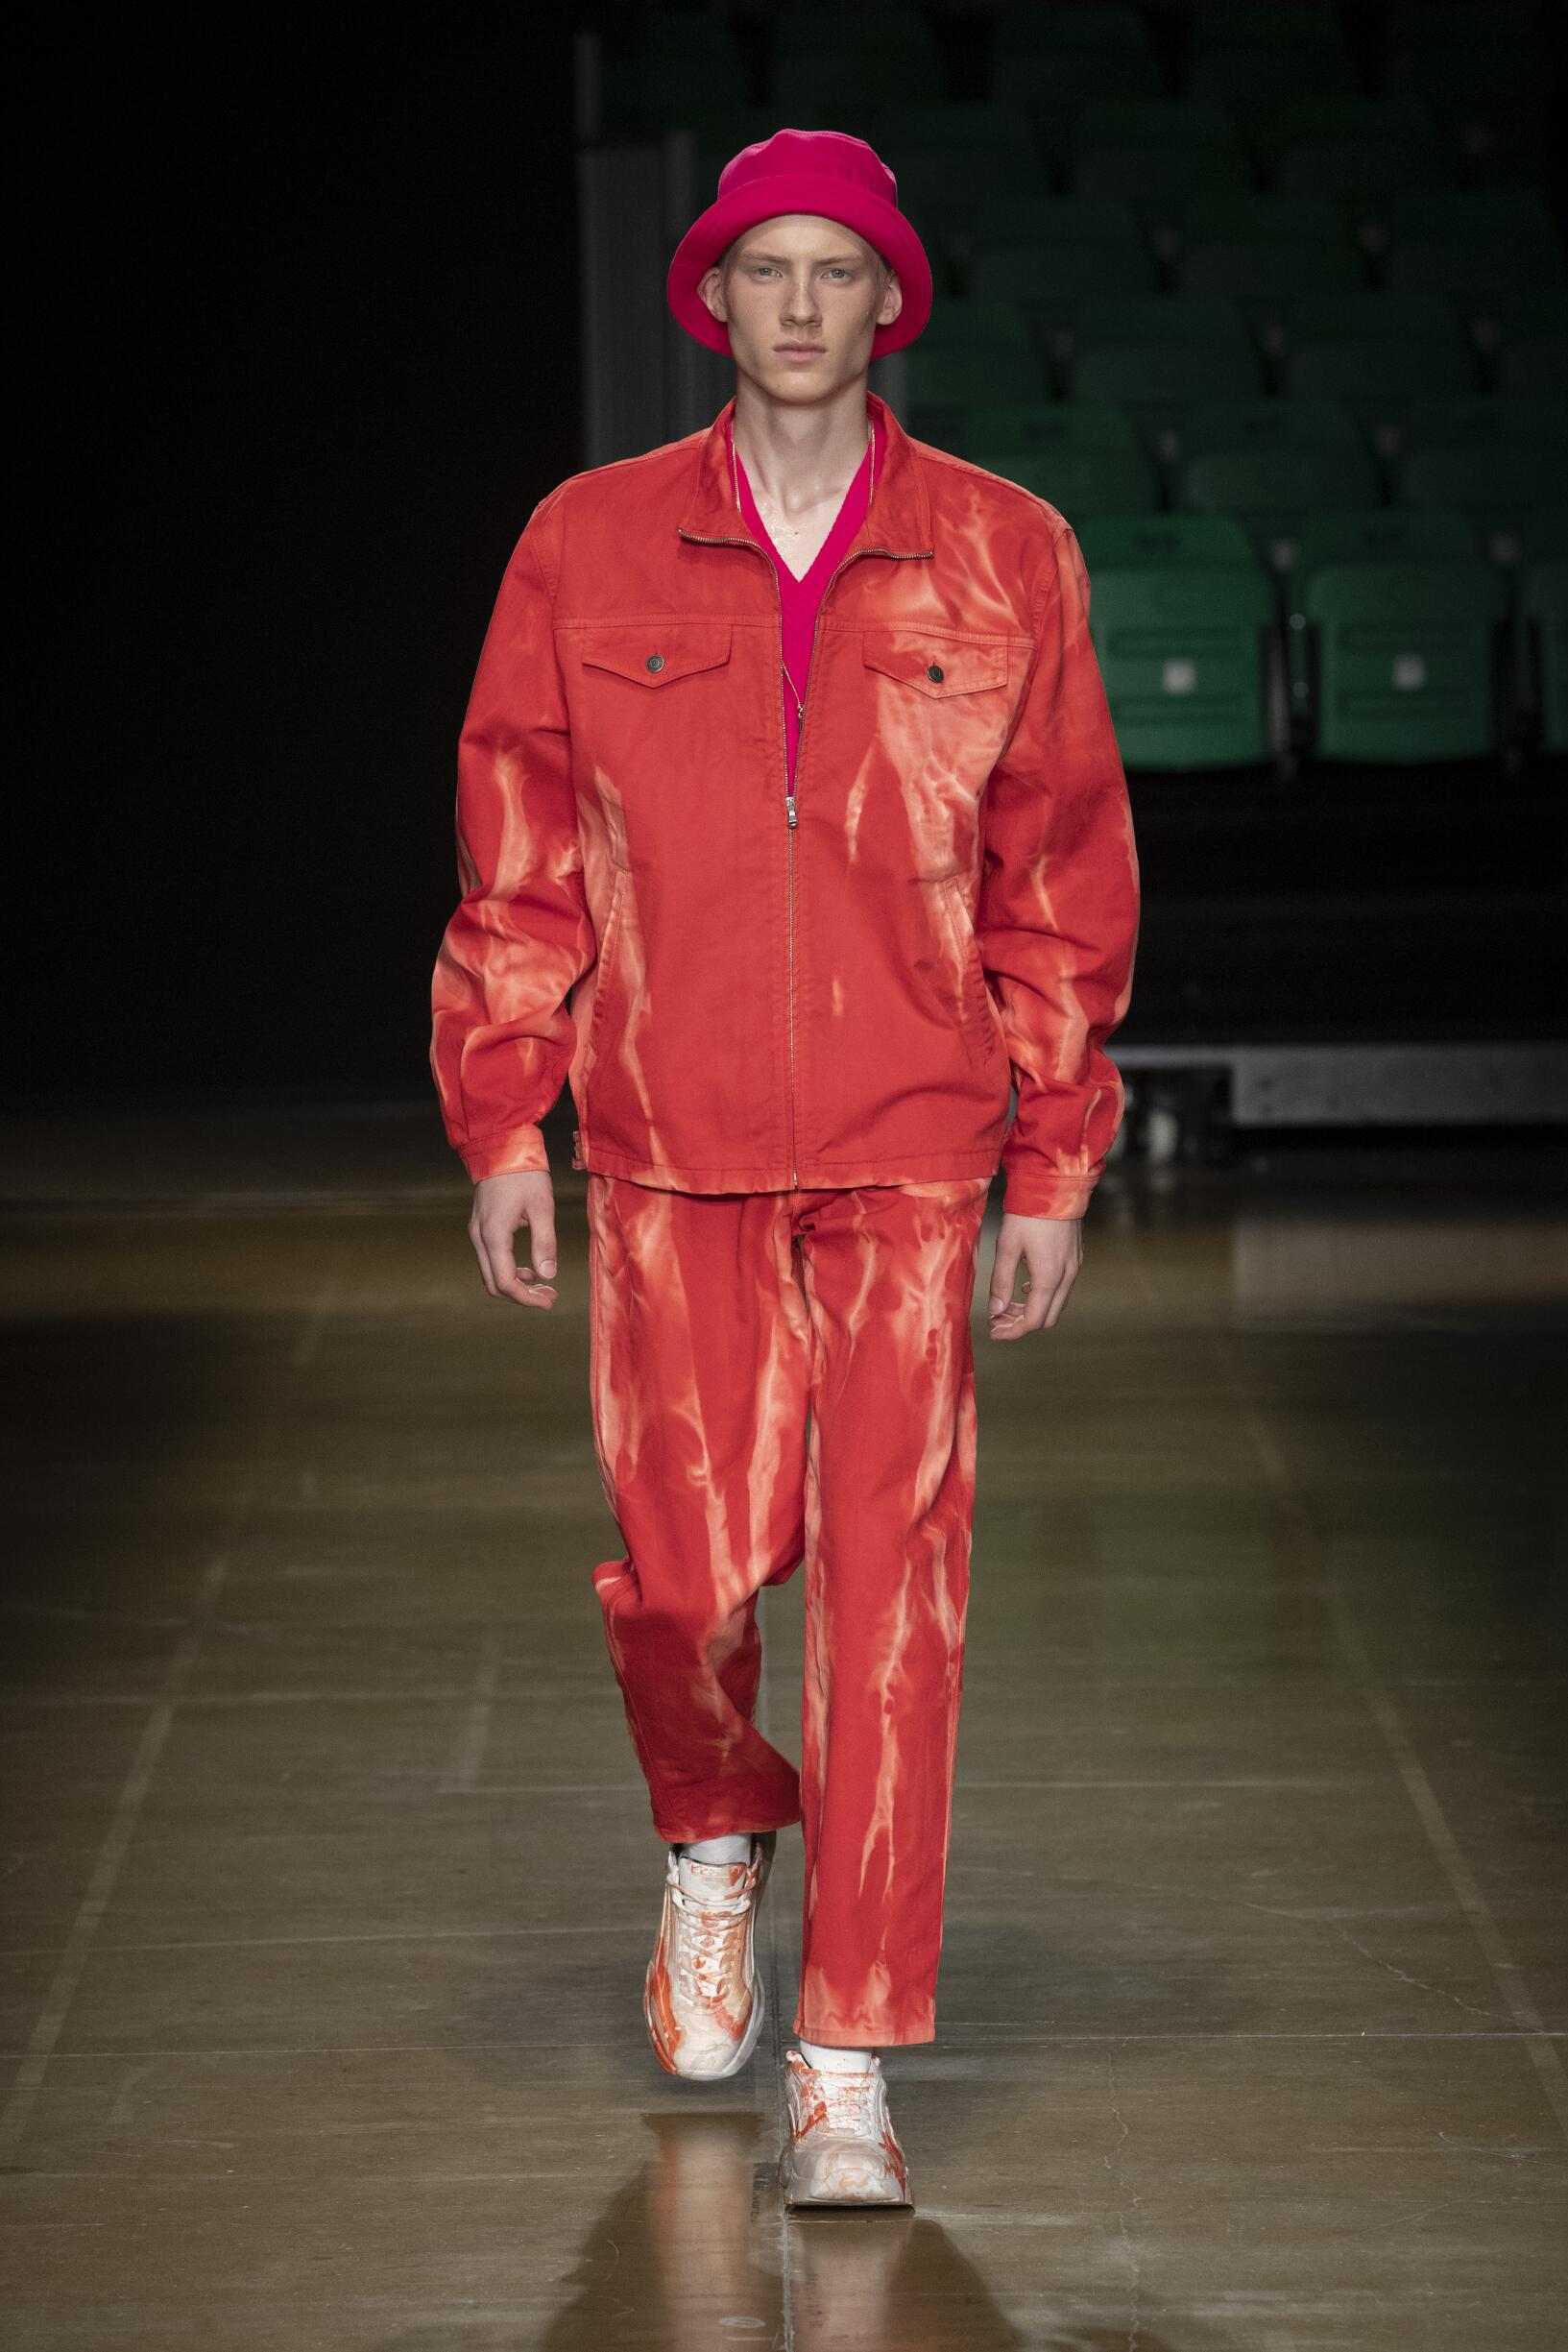 MSGM Menswear Collection Trends